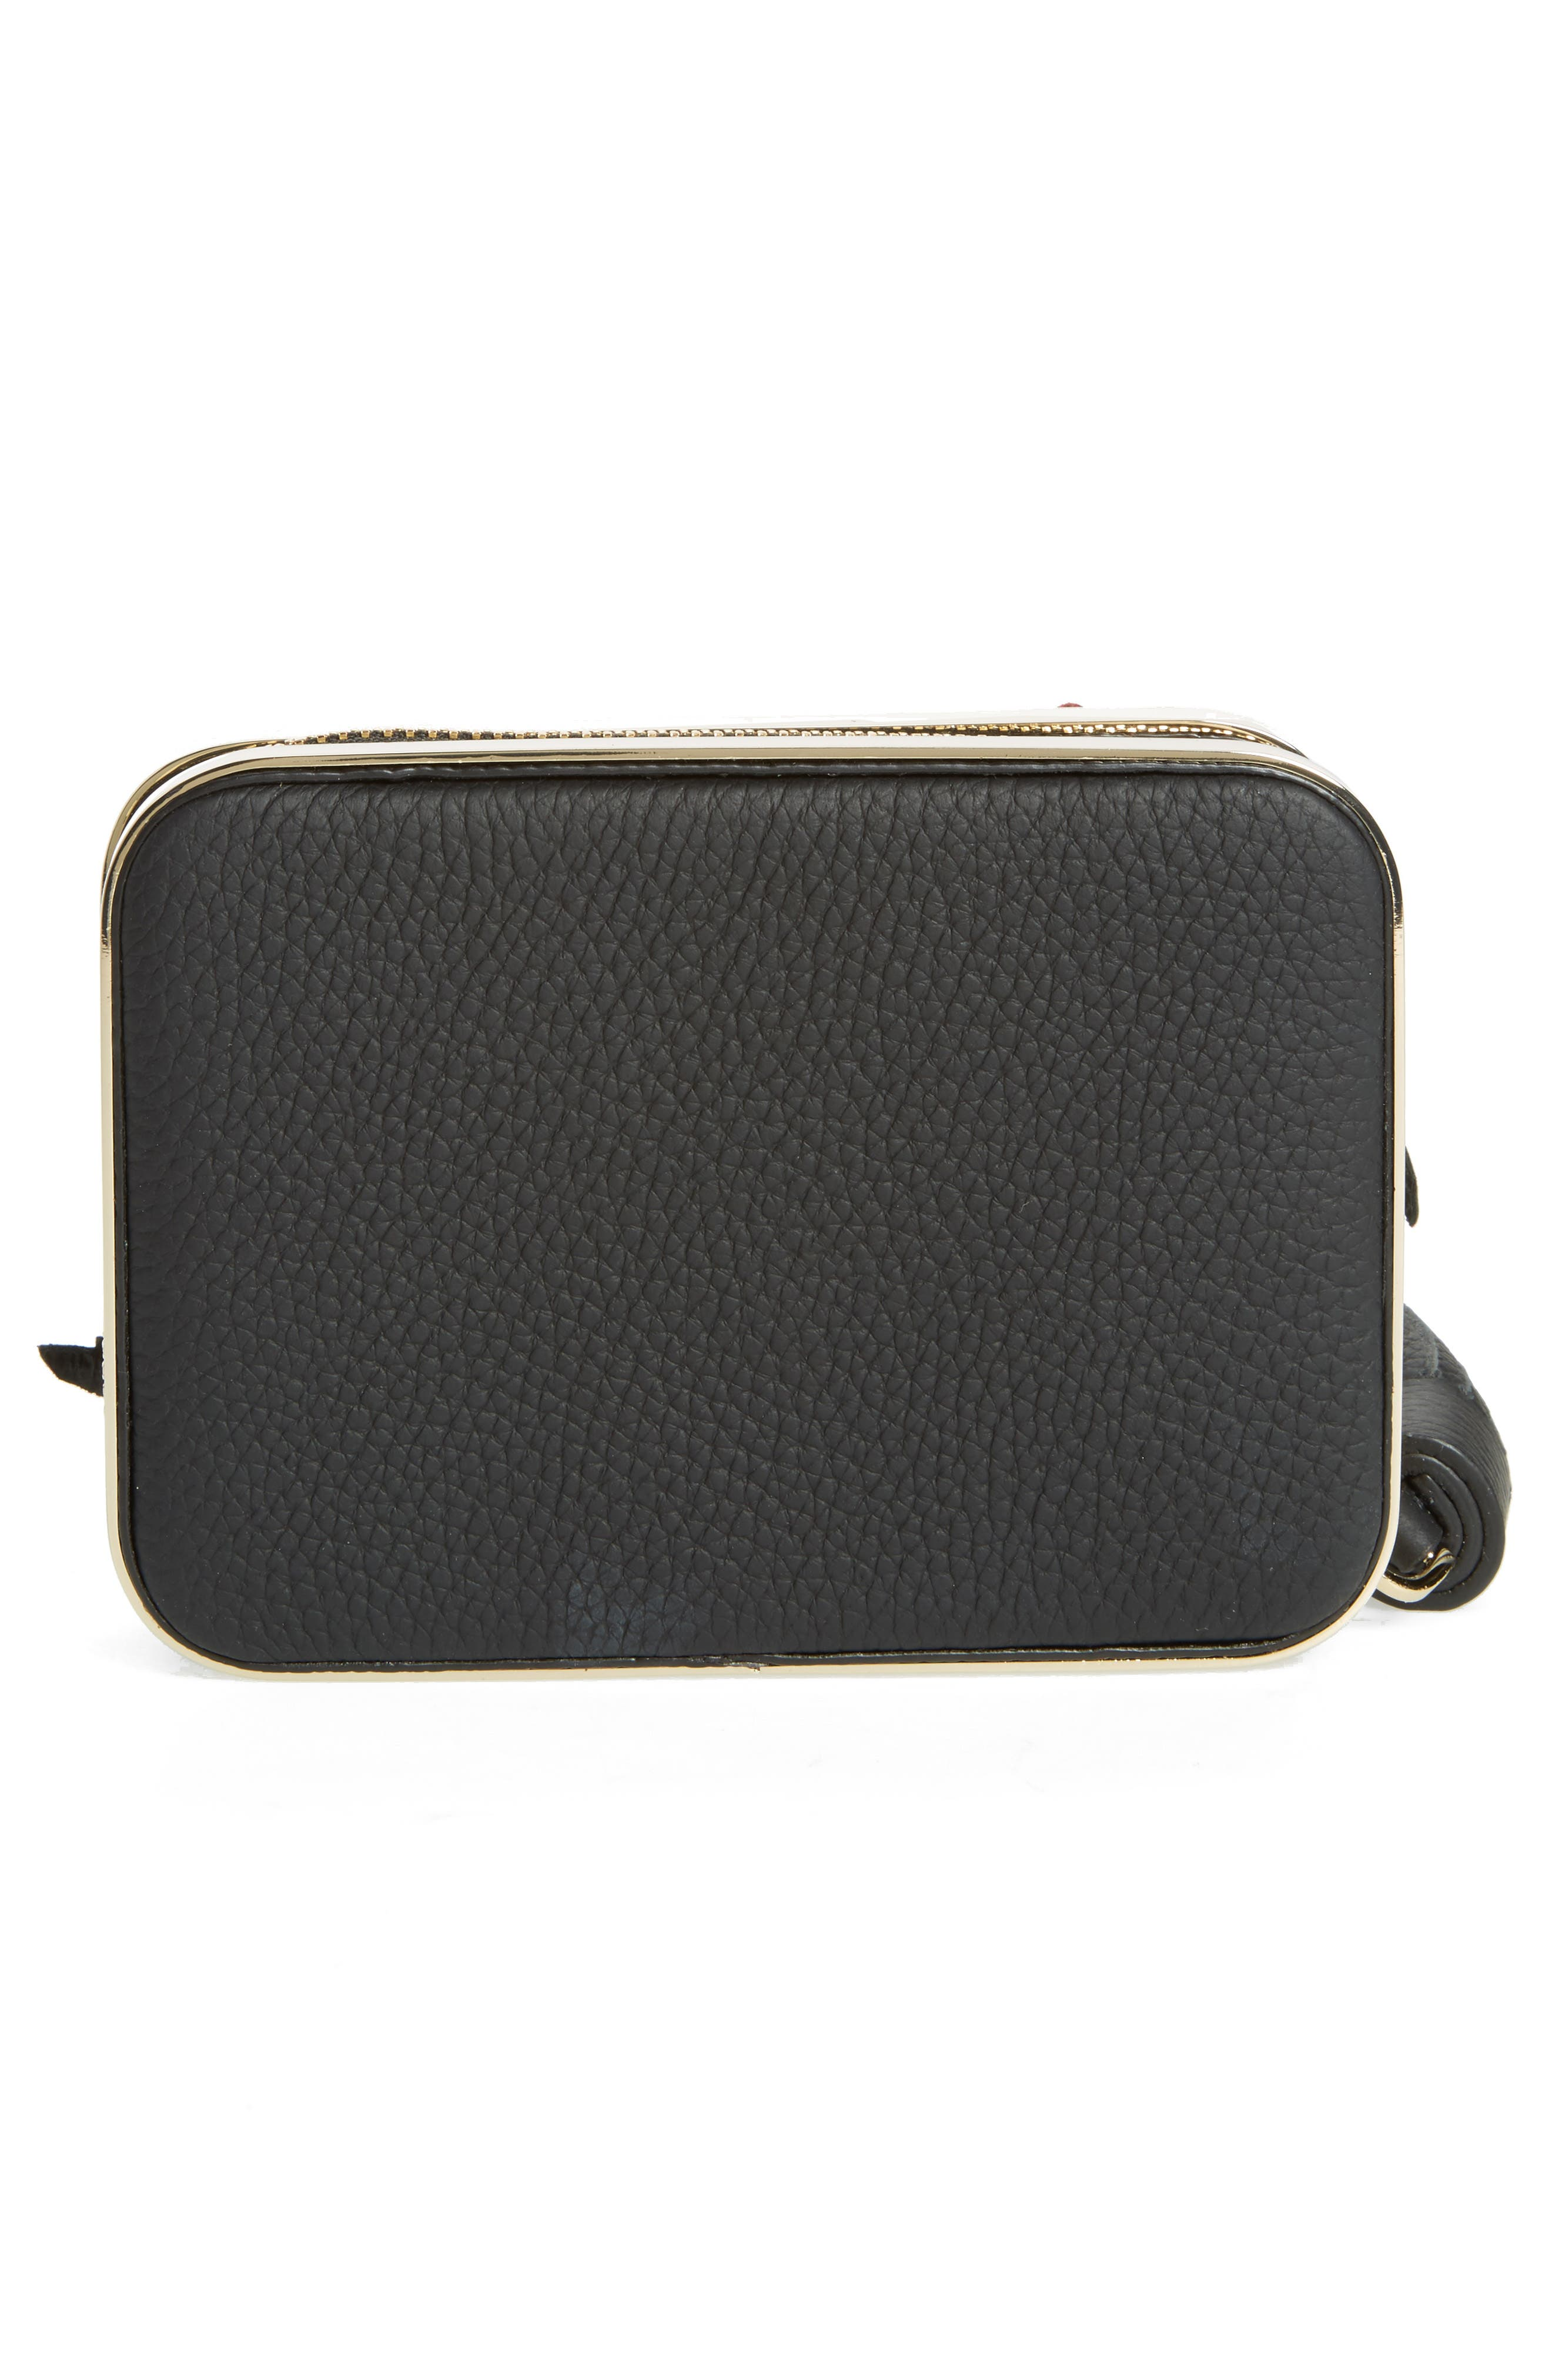 madison evening belles zurie leather frame clutch,                             Alternate thumbnail 3, color,                             001